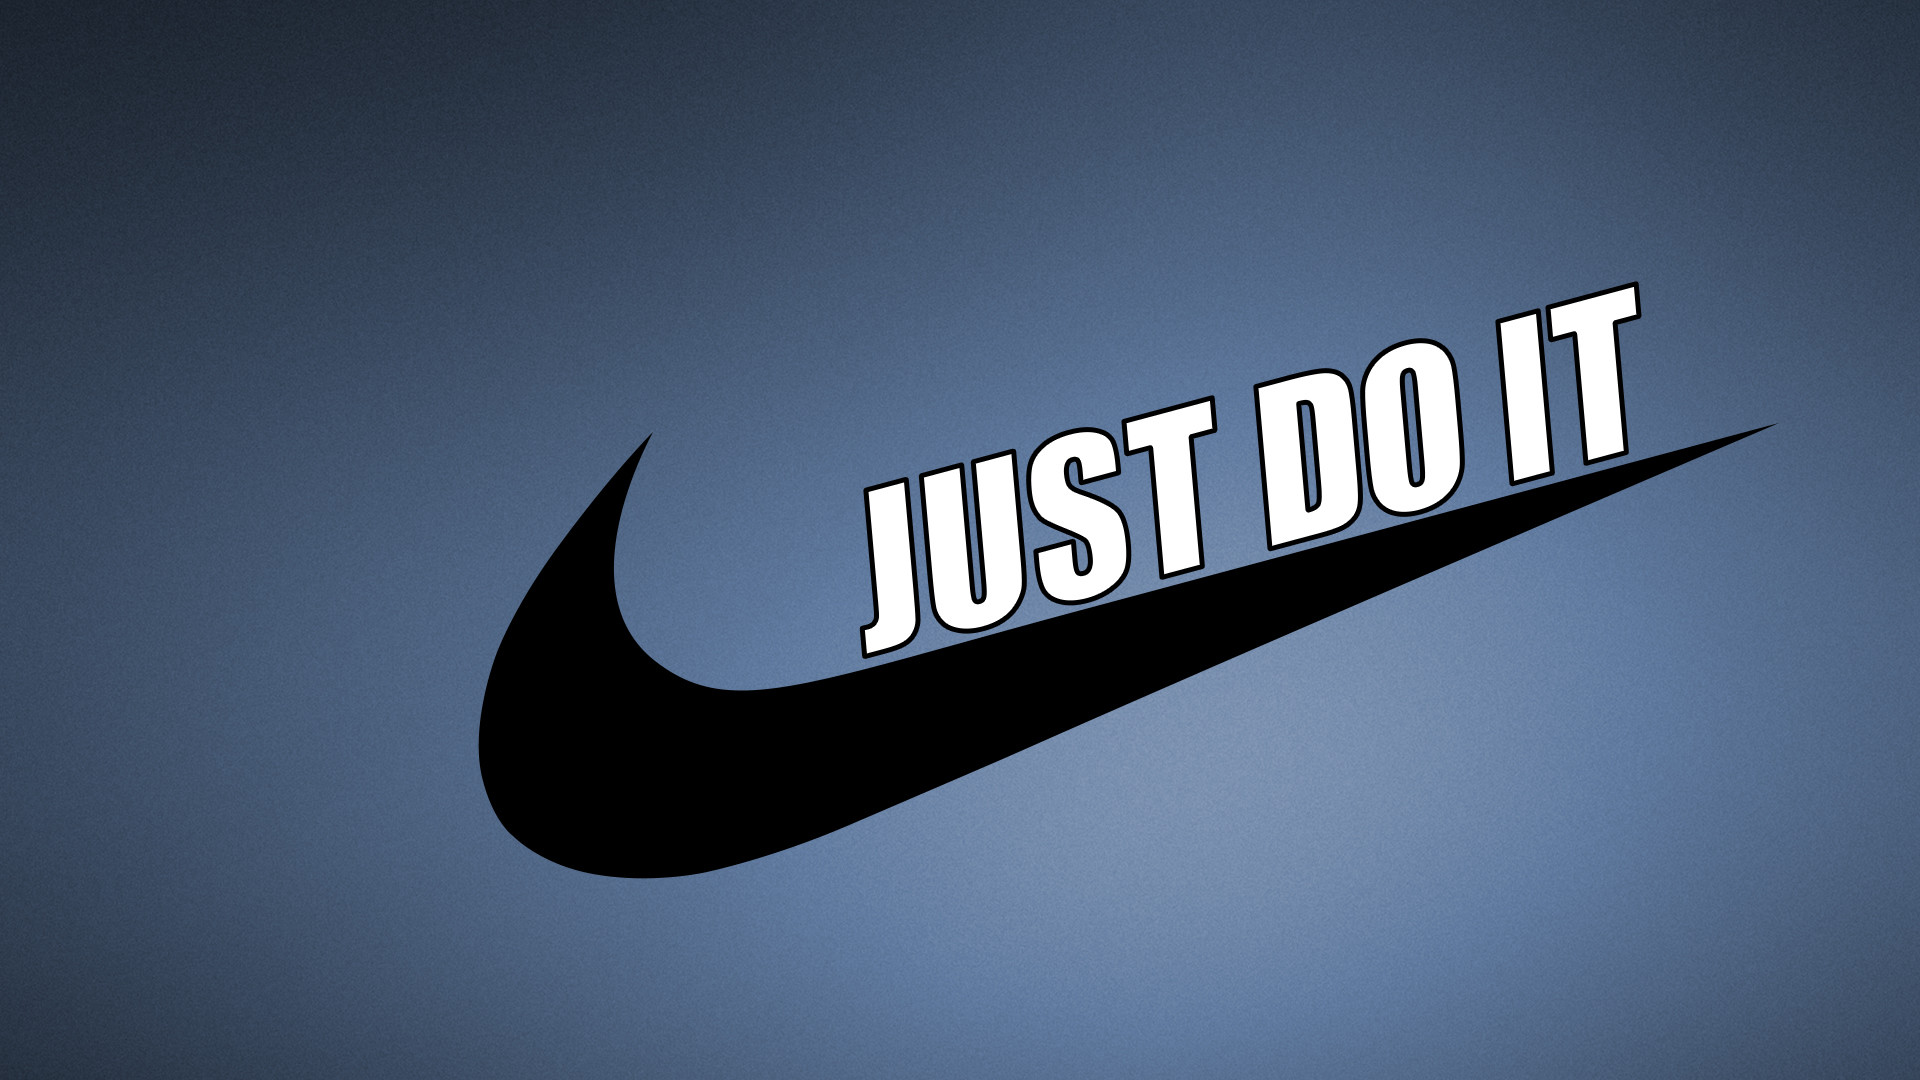 Just do it wallpaper hd 67 images 1920x1200 nike just do it jump cliff iphone wallpaper ipod wallpaper hd nike hd iphone wallpapers wallpapers voltagebd Image collections